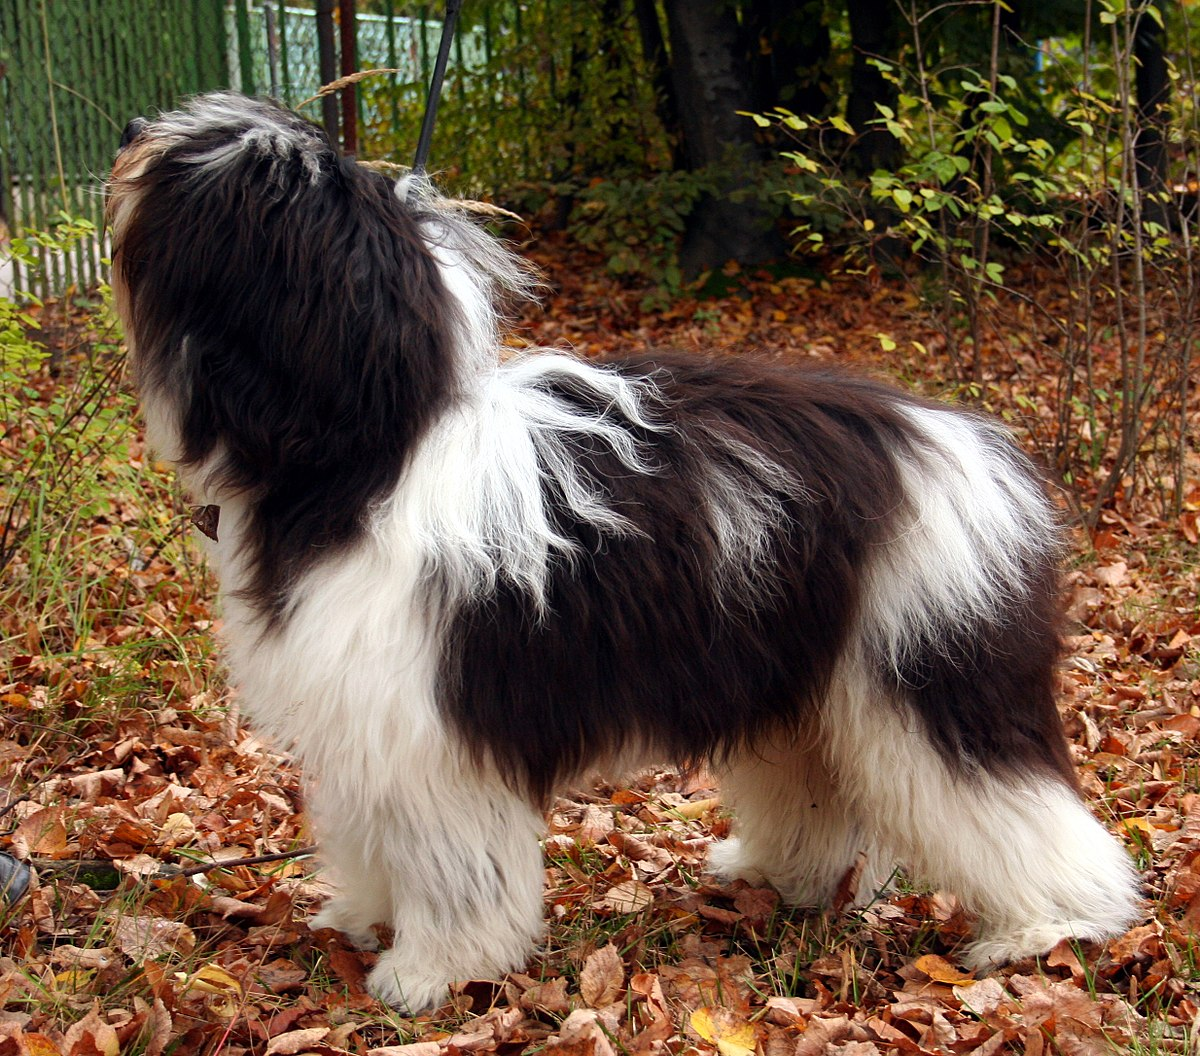 Polish Lowland Sheepdog - Wikipedia